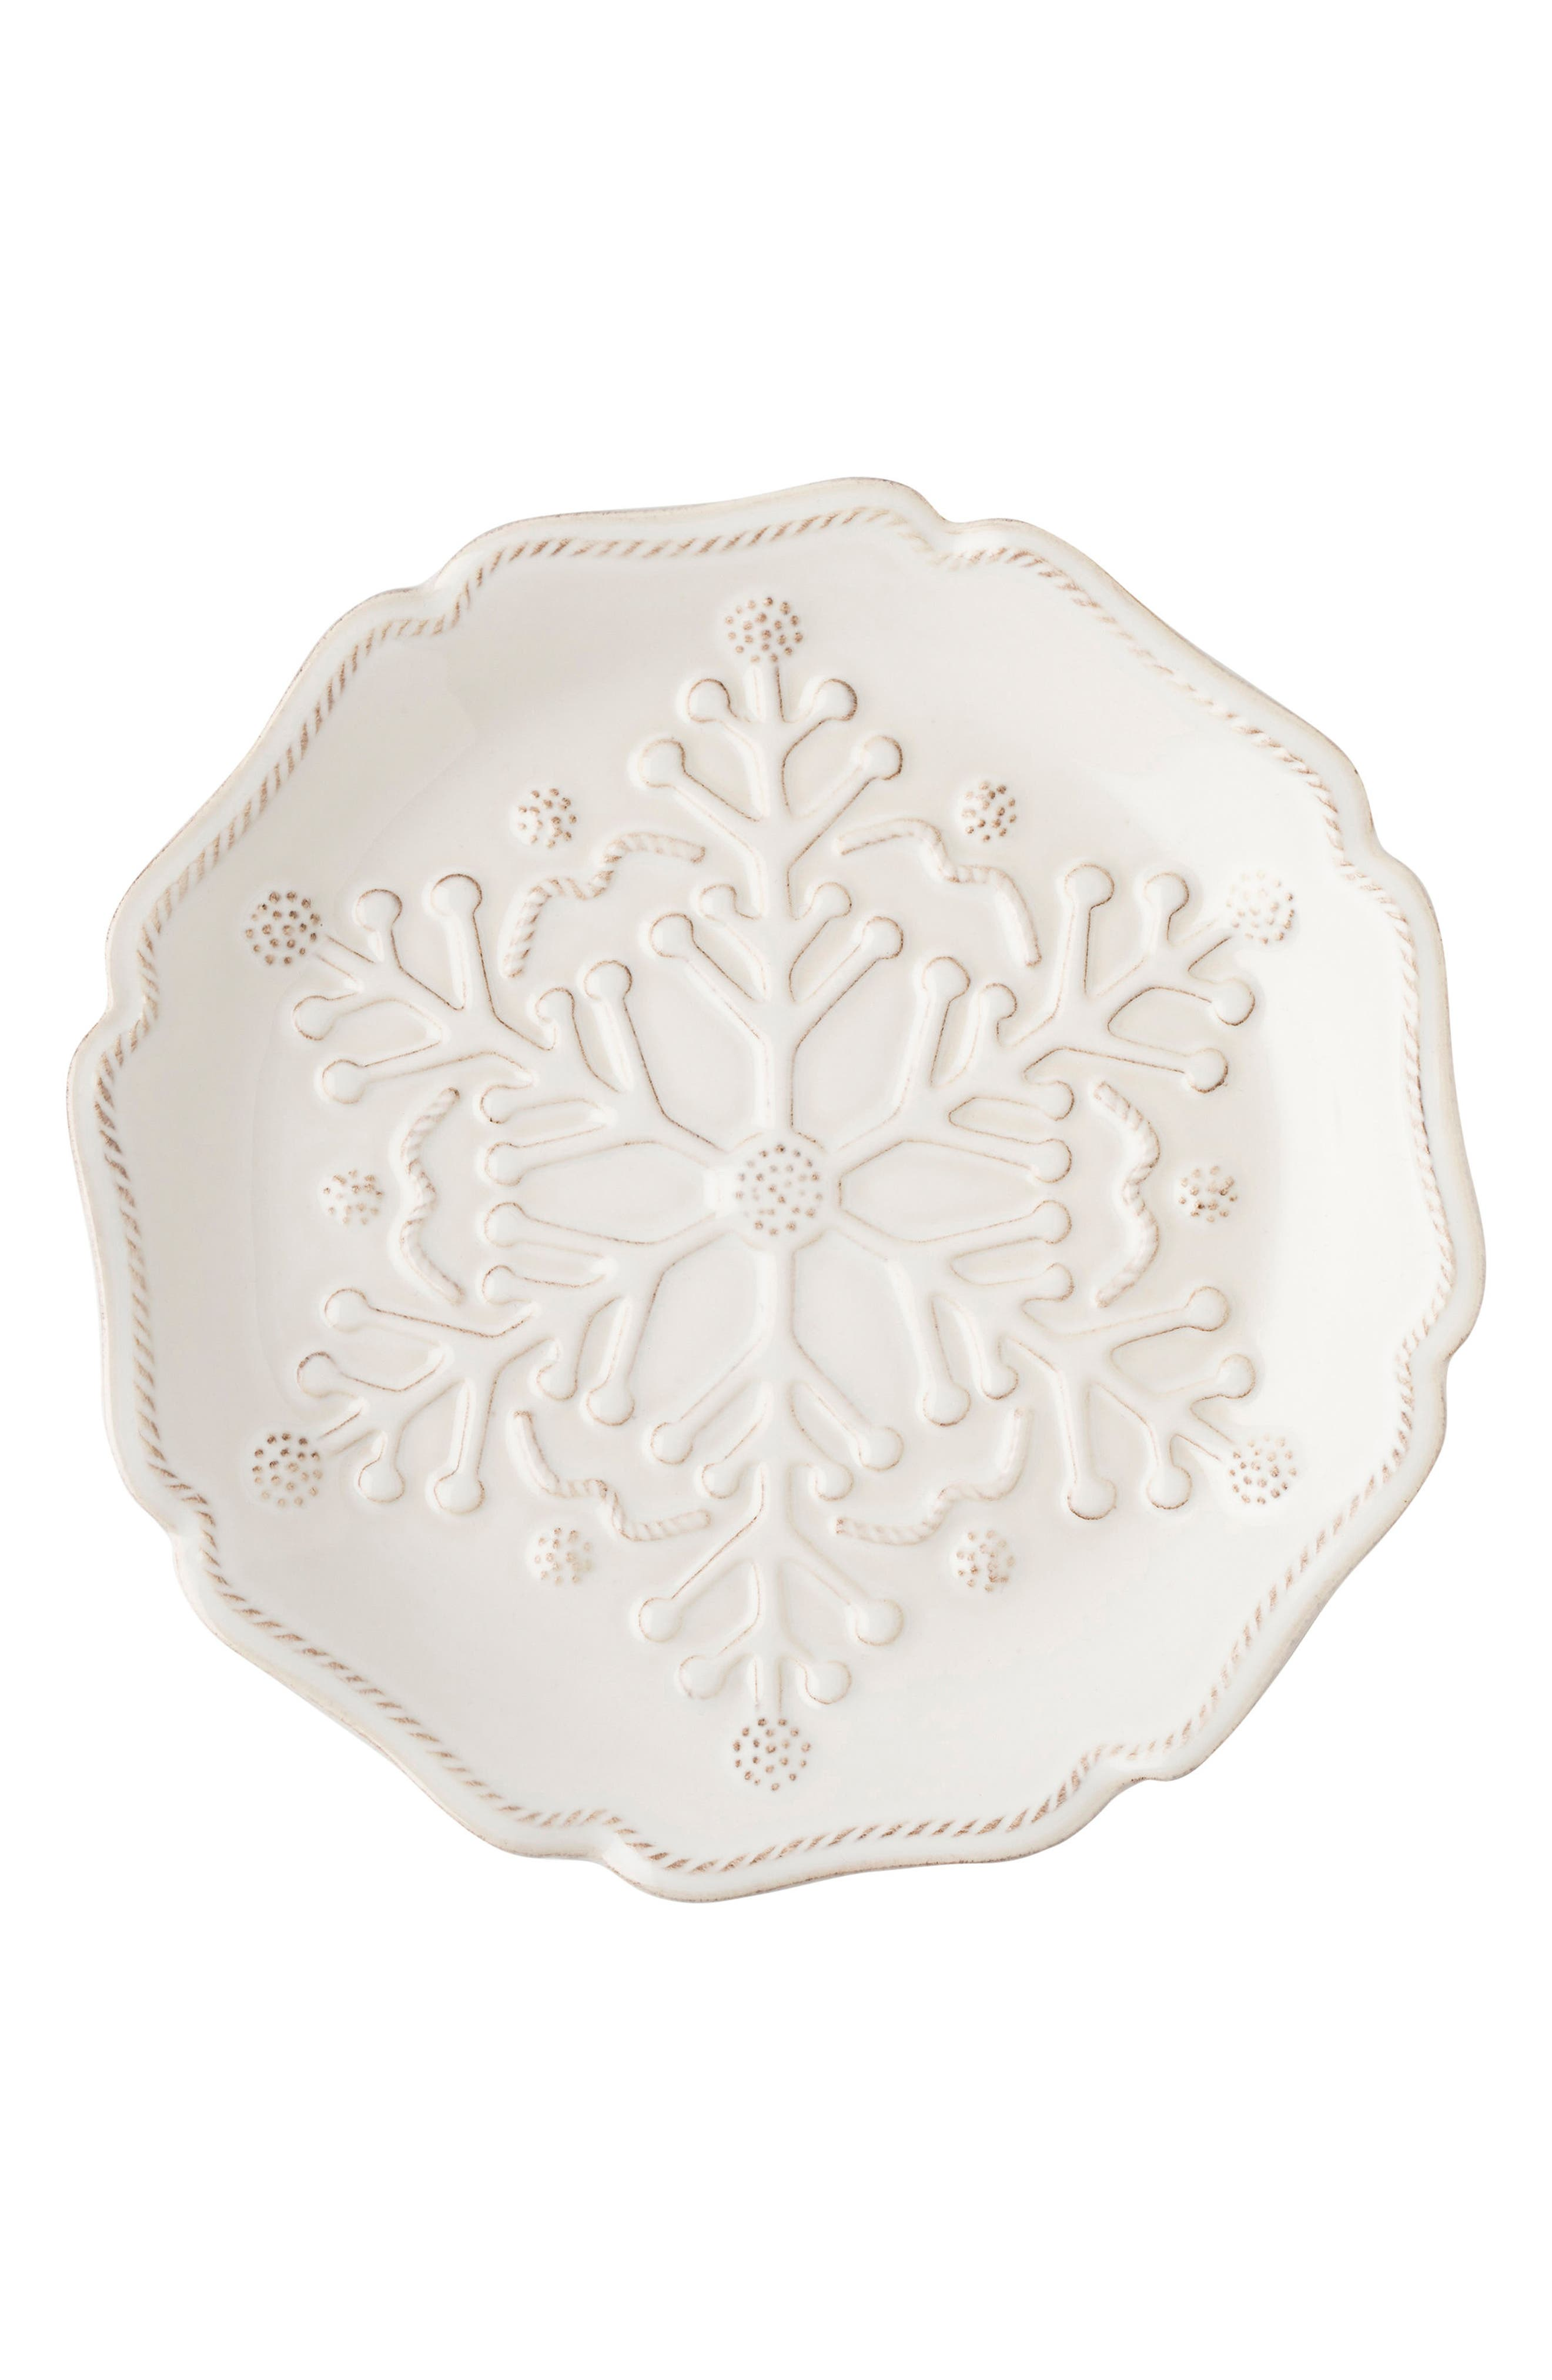 Snowfall Whitewash Set of 4 Ceramic Tidbit Plates,                             Alternate thumbnail 2, color,                             100